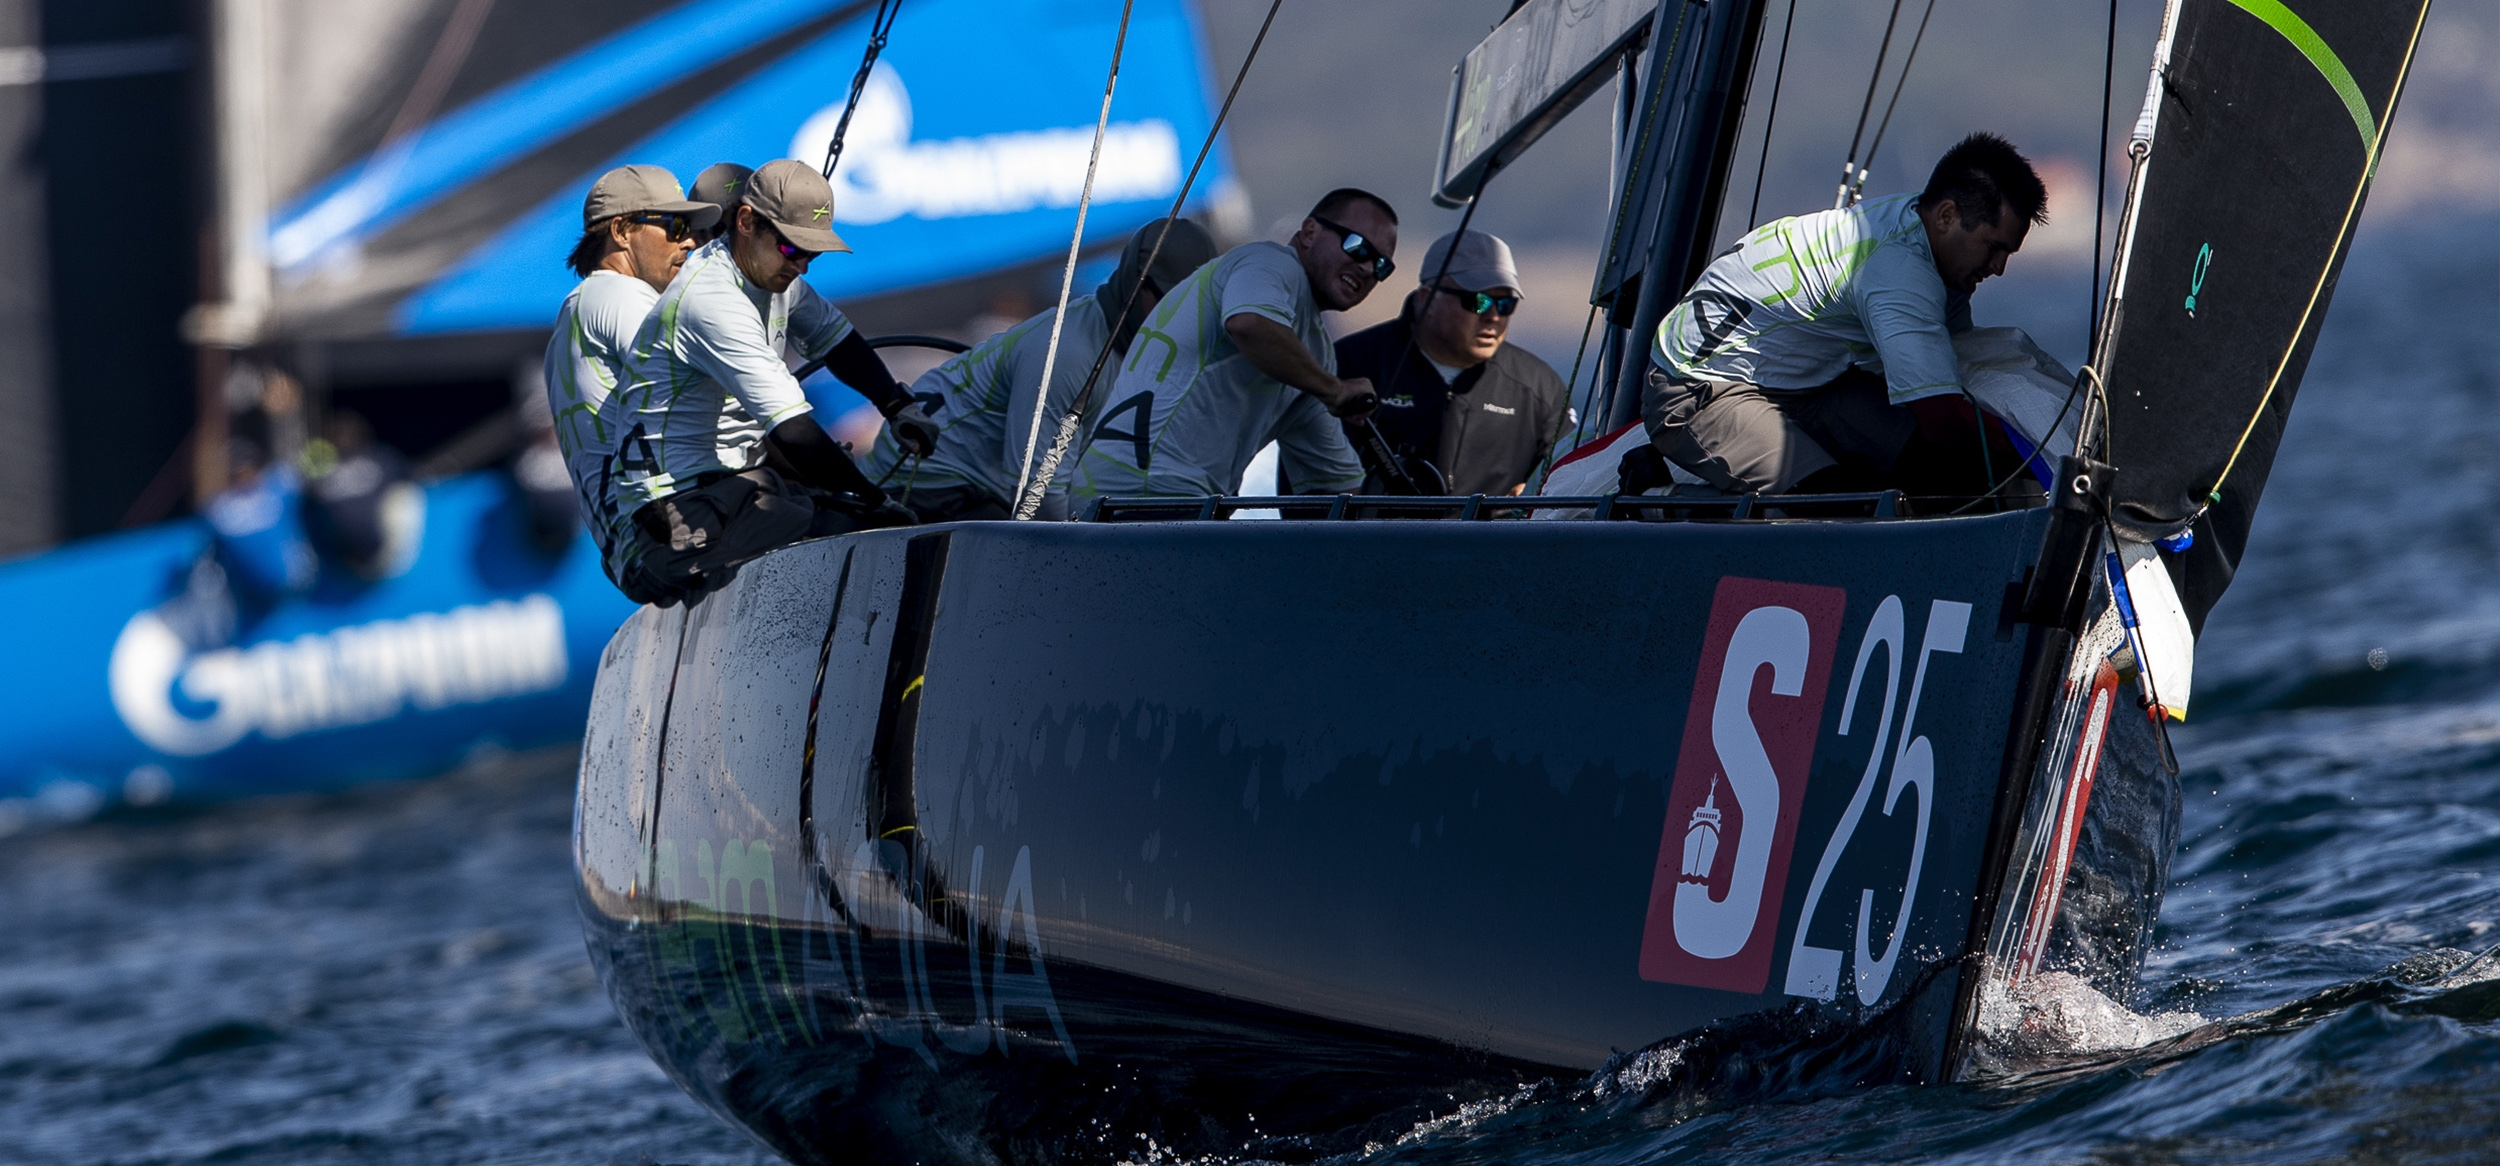 a2a yachting team sailed - HD 2500×1166